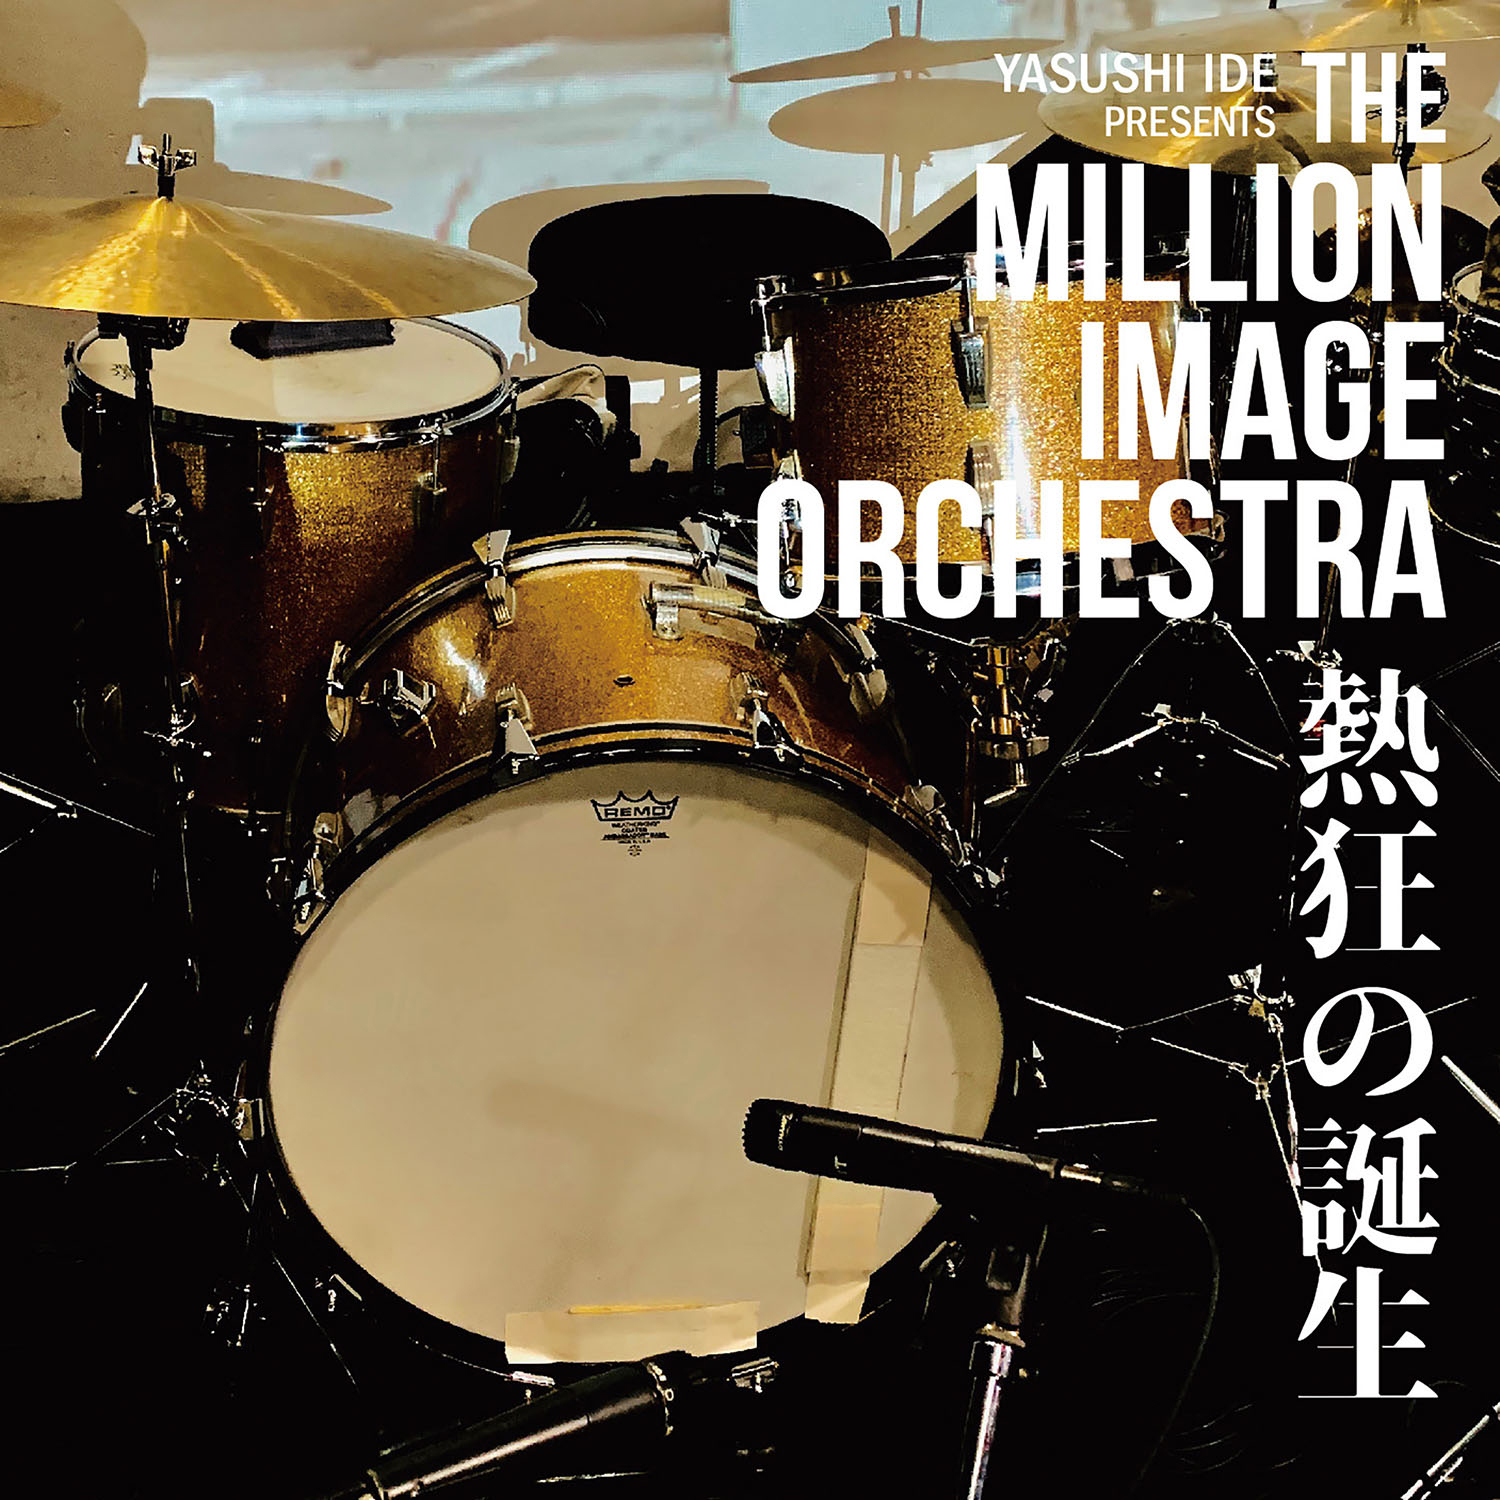 THE MILLION IMAGE ORCHESTRA 『熱狂の誕生』